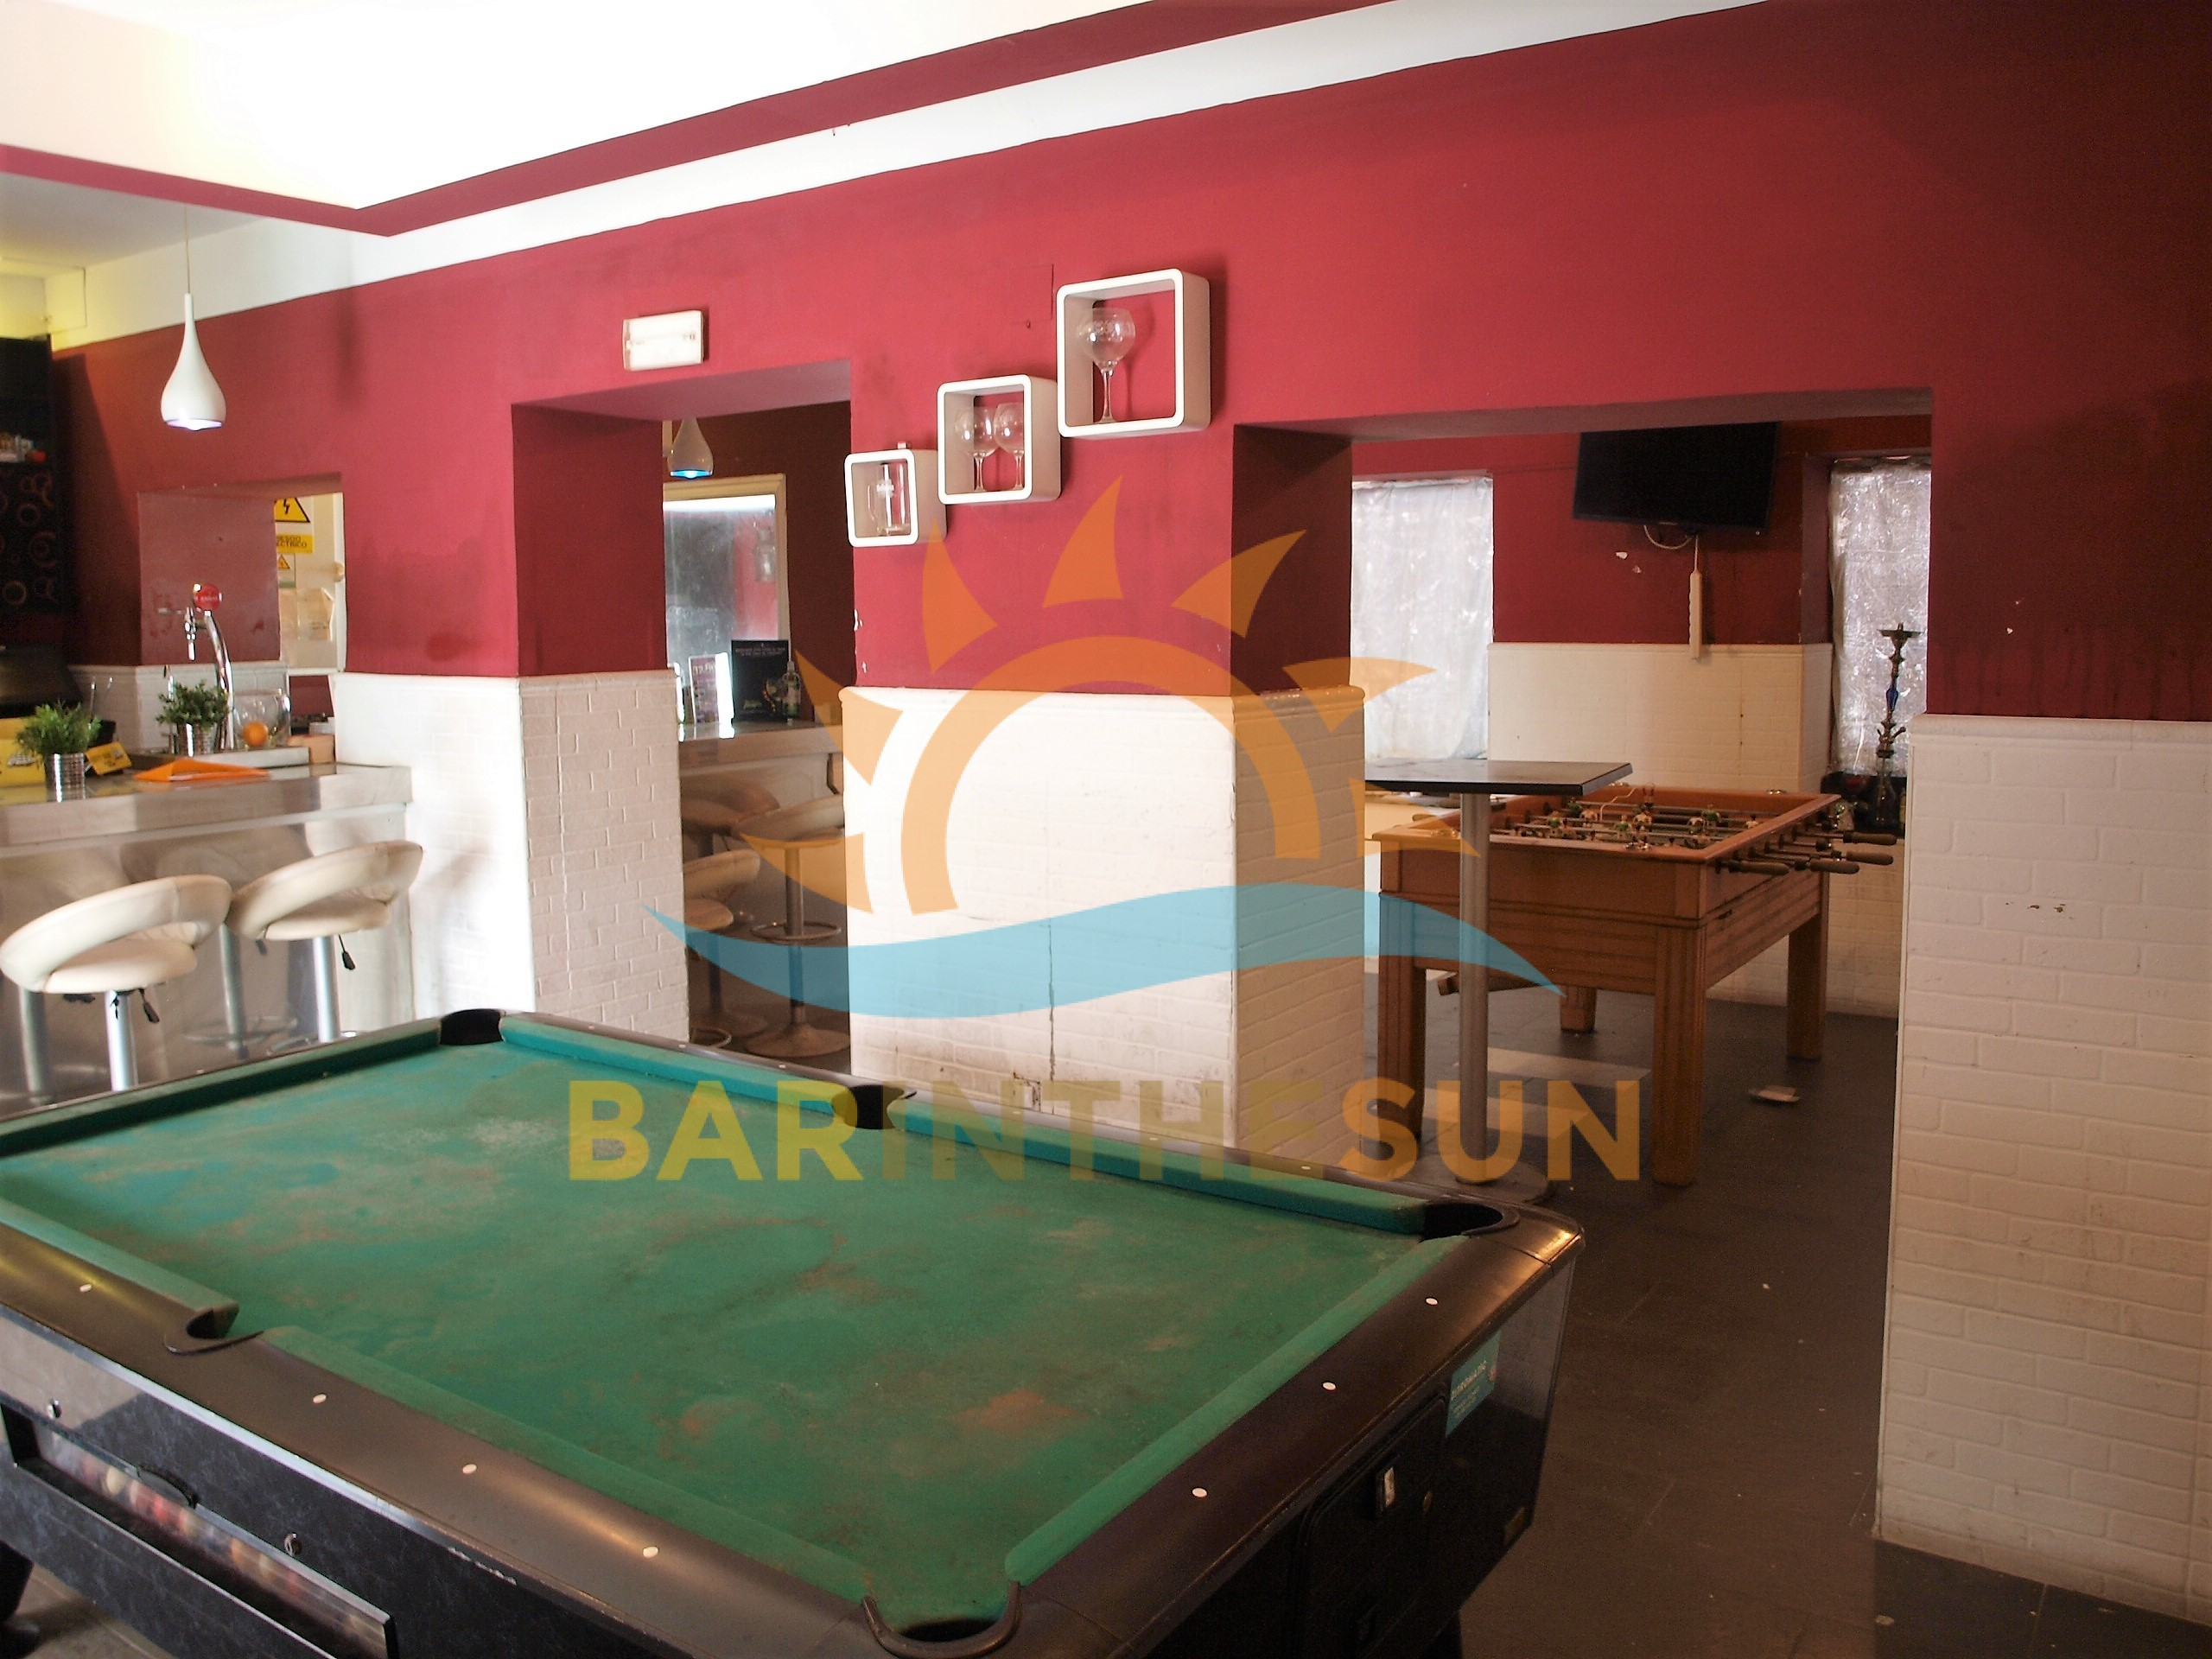 Cocktail Lounge Bar For Sale In Fuengirola For Sale, Bars